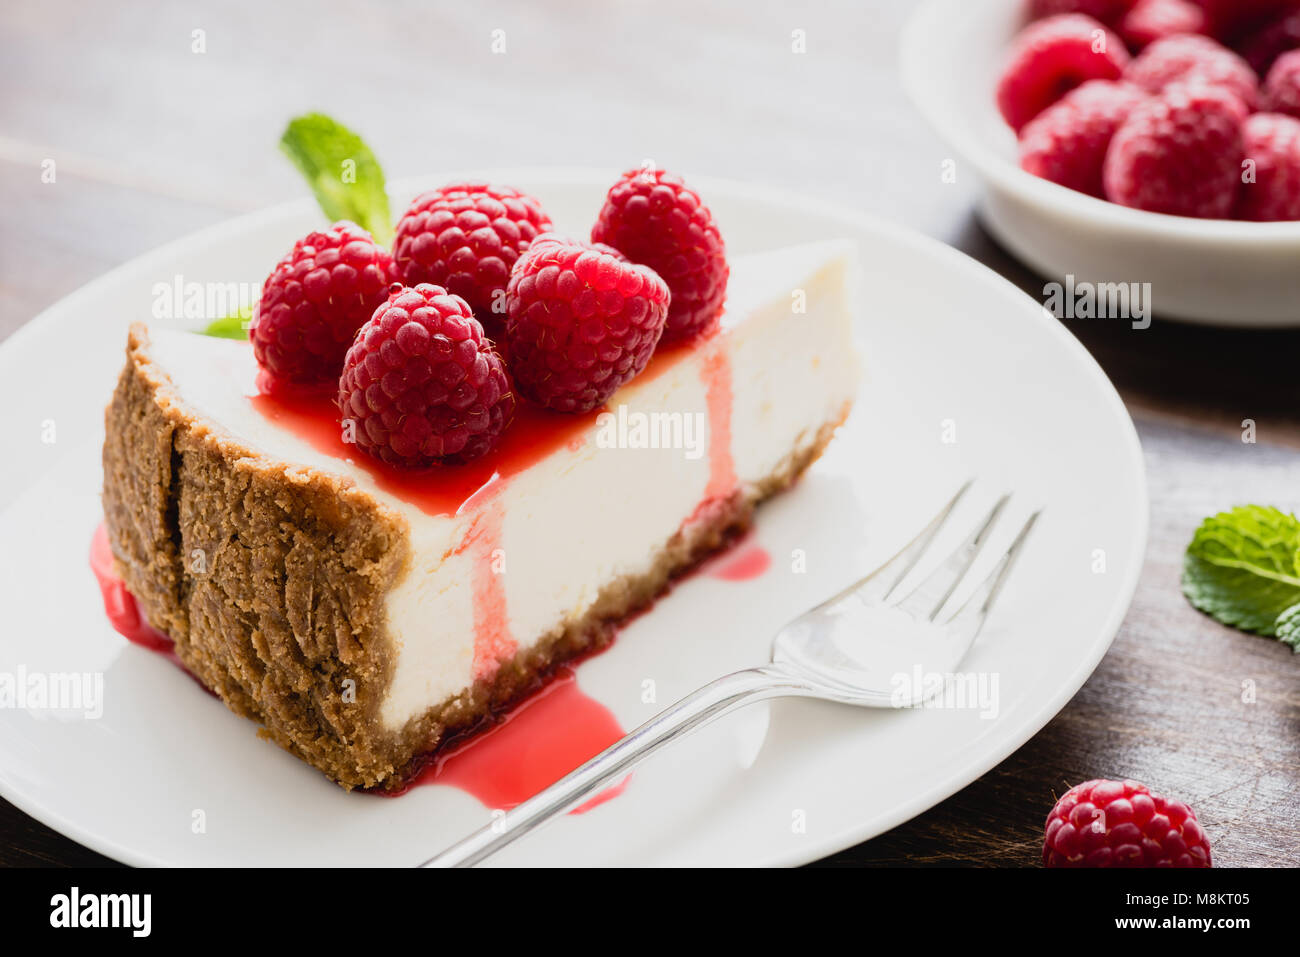 Cheesecake with raspberries and berry sauce on white plate, closeup view, selective focus. Slice of cheesecake - Stock Image